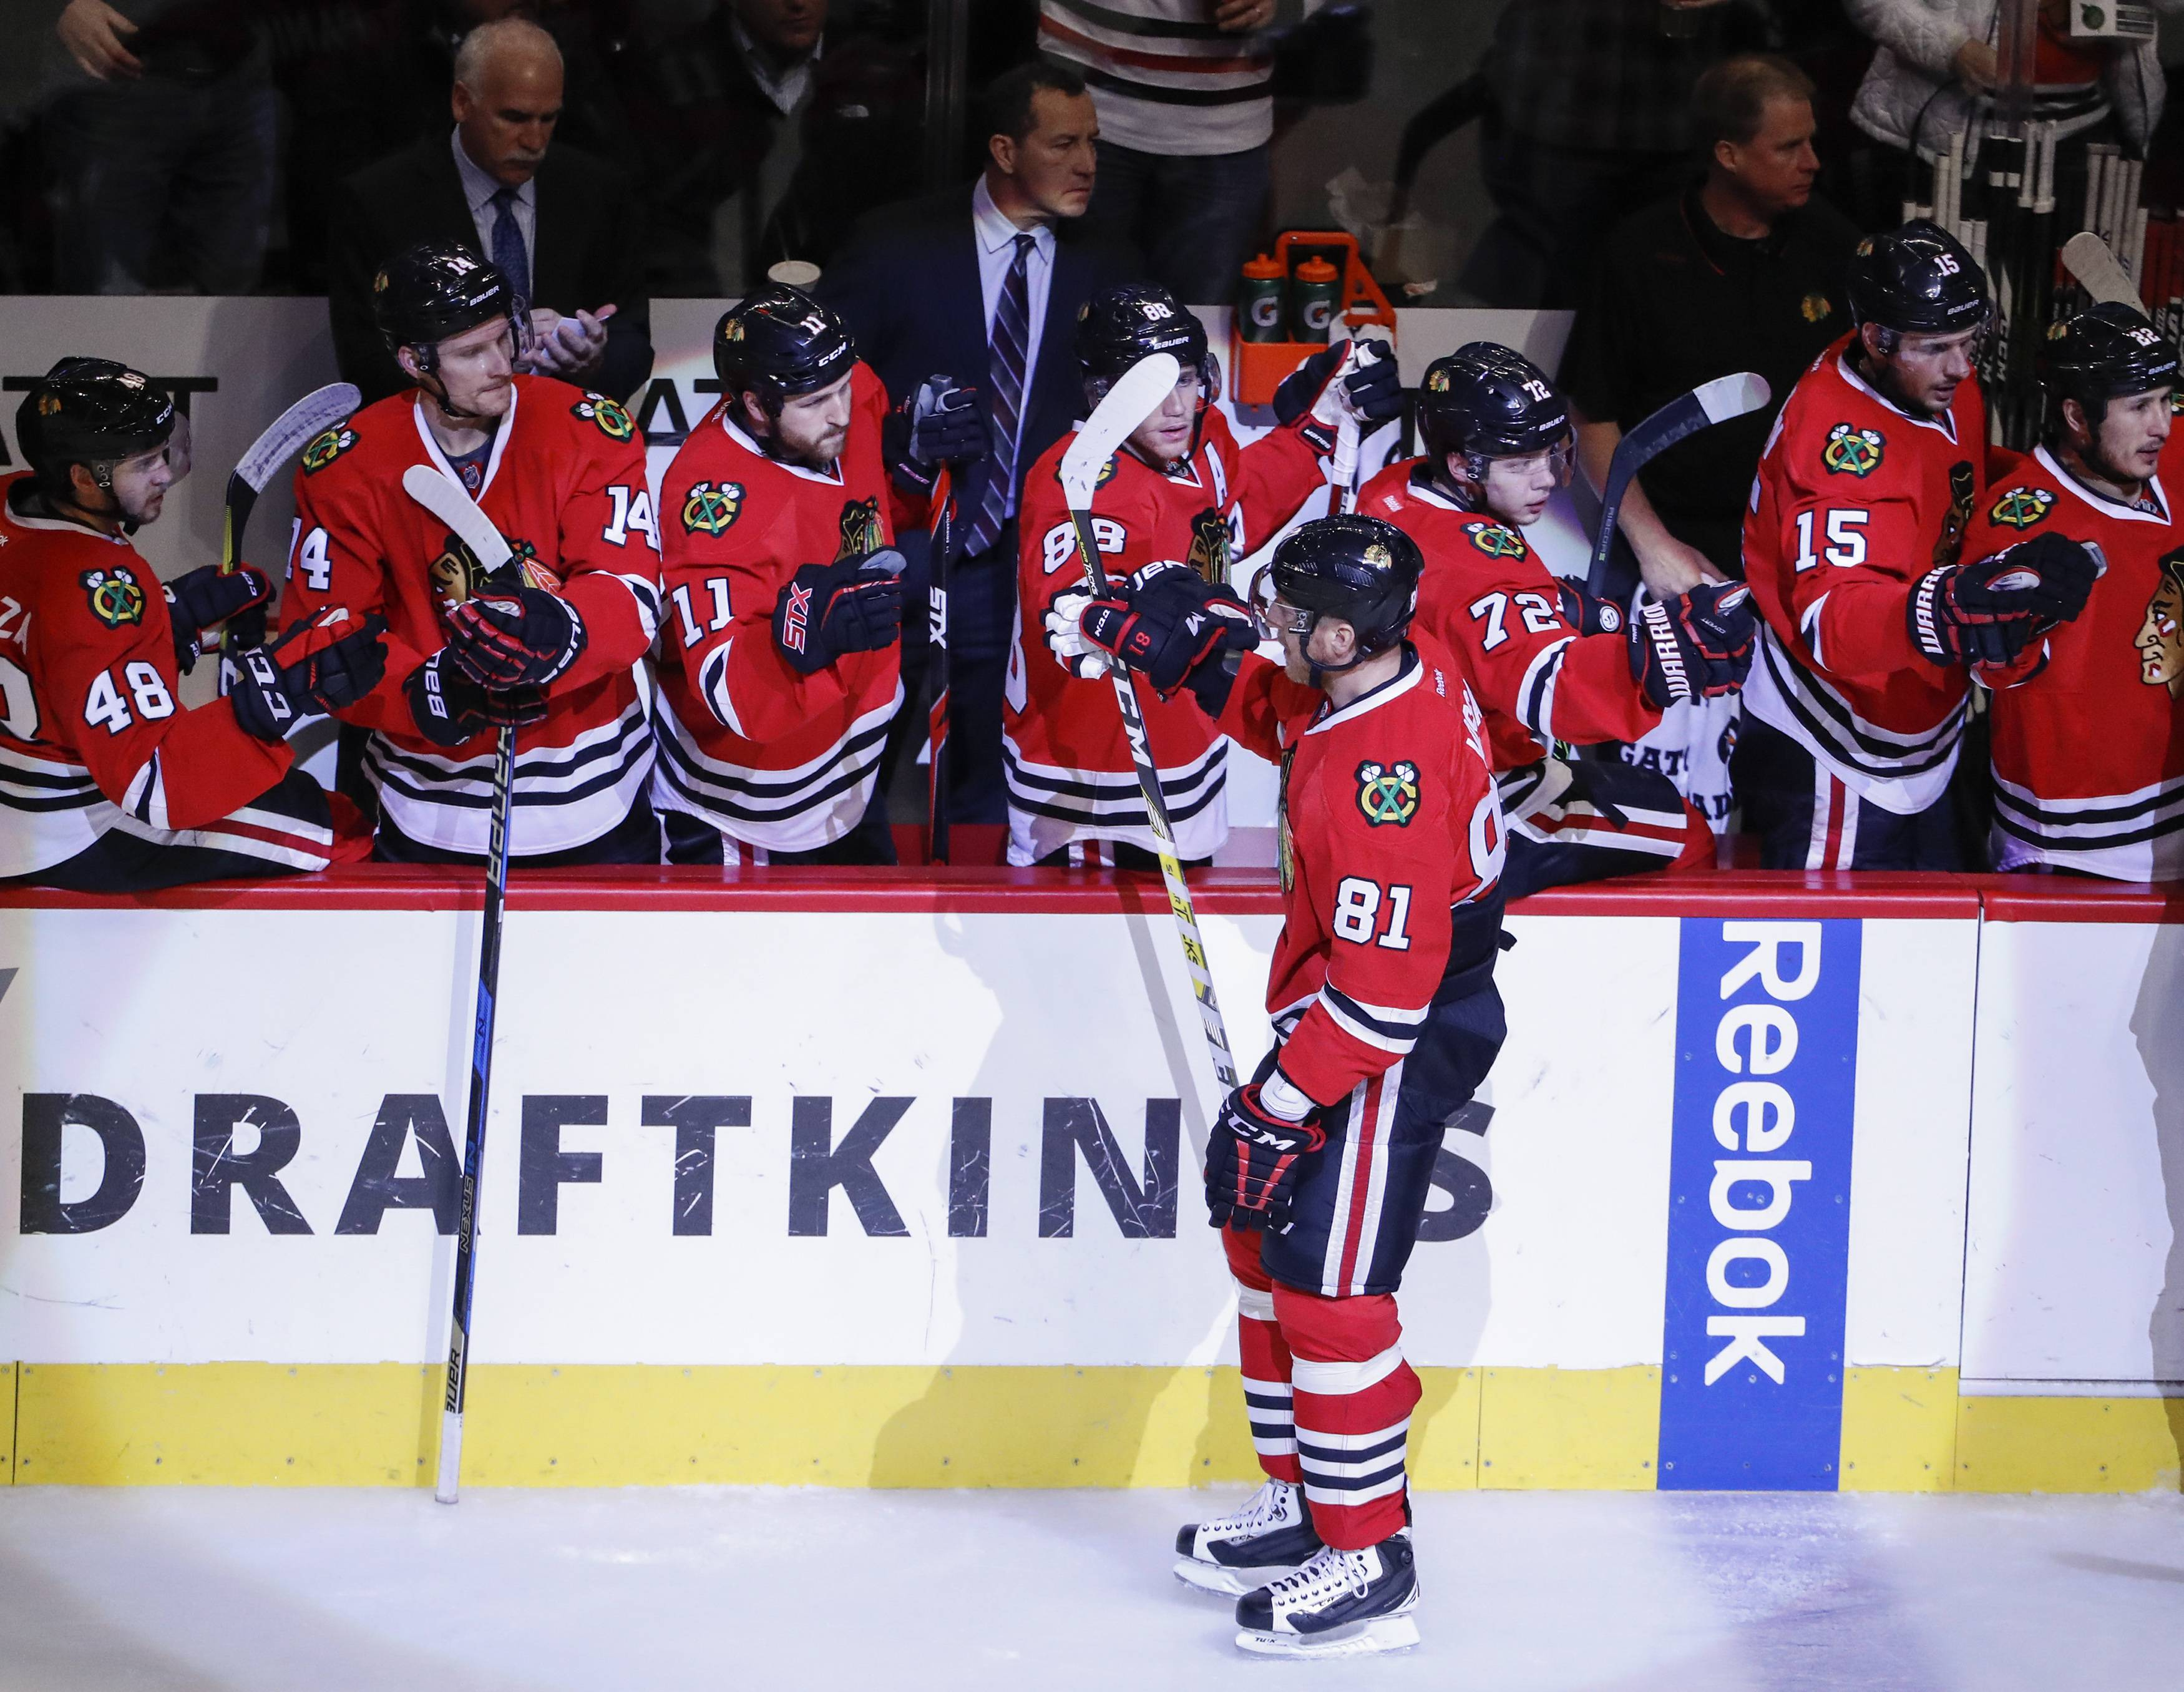 The Blackhawks had no problem getting a 4-0 victory over Arizona at the United Center on Tuesday, getting 2 goals from Marian Hossa.